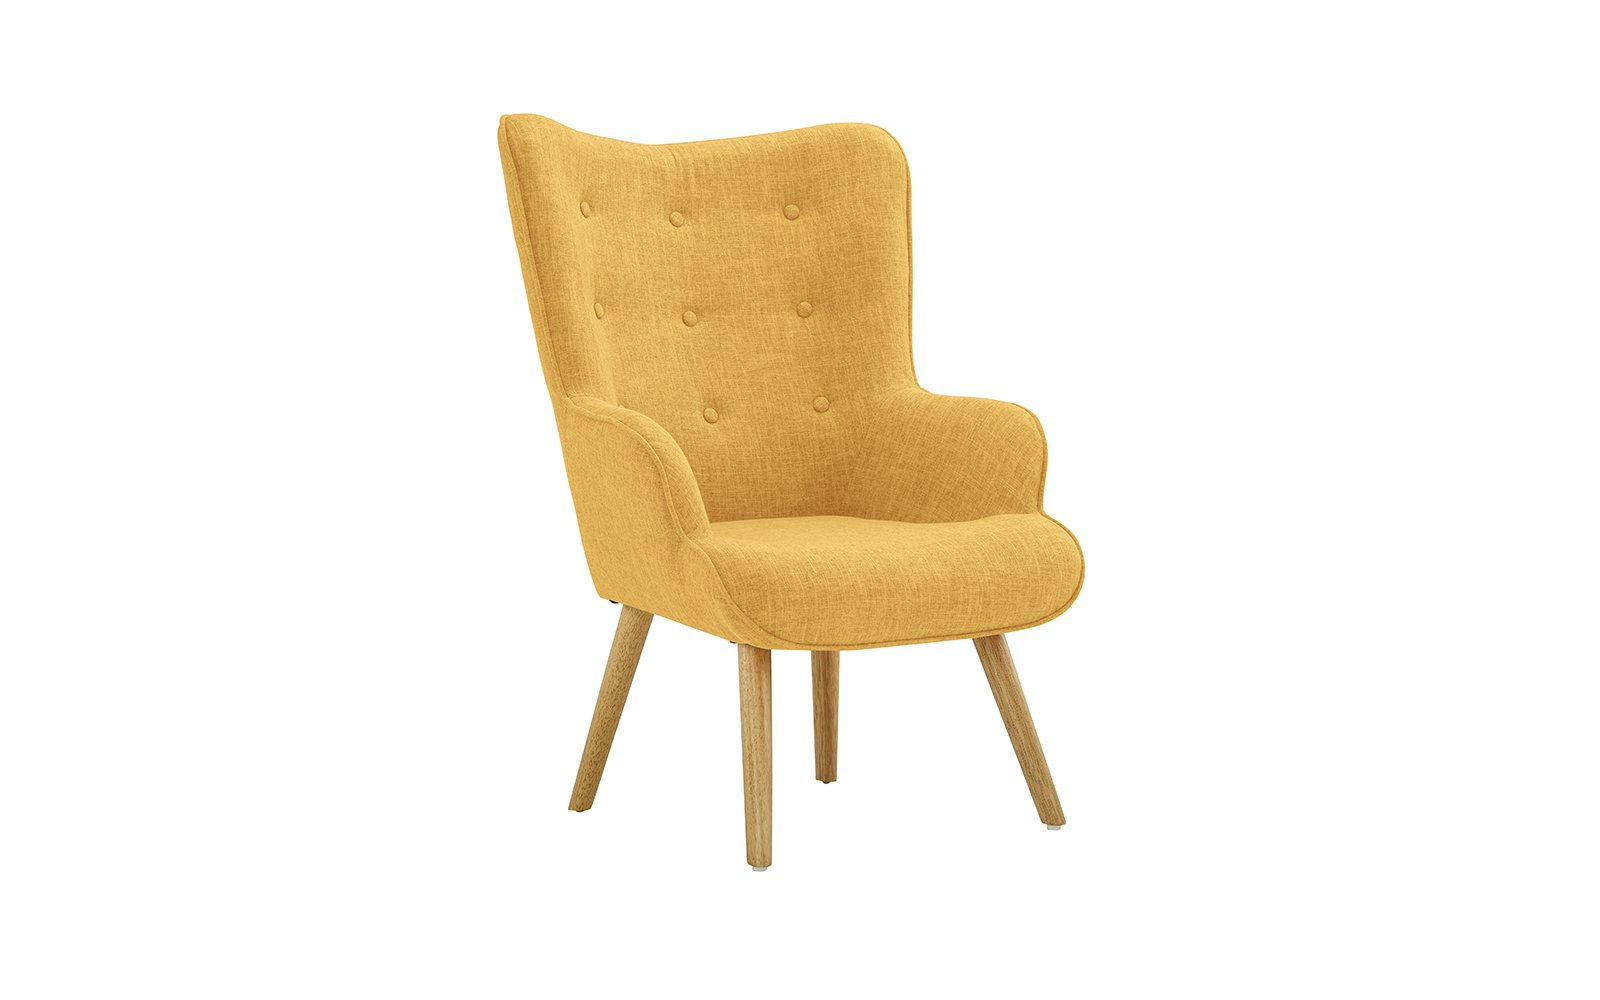 Accent Chair for Living Room, Upholstered Linen Arm Chairs with Tufted Button Detailing and Natural Wooden Legs (Yellow) - Divano Roma Furniture launches its new classic style accent chair upholstered with linen fabric that includes tufted button detailing on the backrest. Comfortable and sturdy, this chairs comes with high density memory foam cushions that have hypoallergenic stuffing, making them ideal for people who suffer from dust allergies. Available in blue, this stylish arm chair is a great addition to your living room, bed room, guest room and kid's room. - living-room-furniture, living-room, accent-chairs - 61pYMfctKCL -